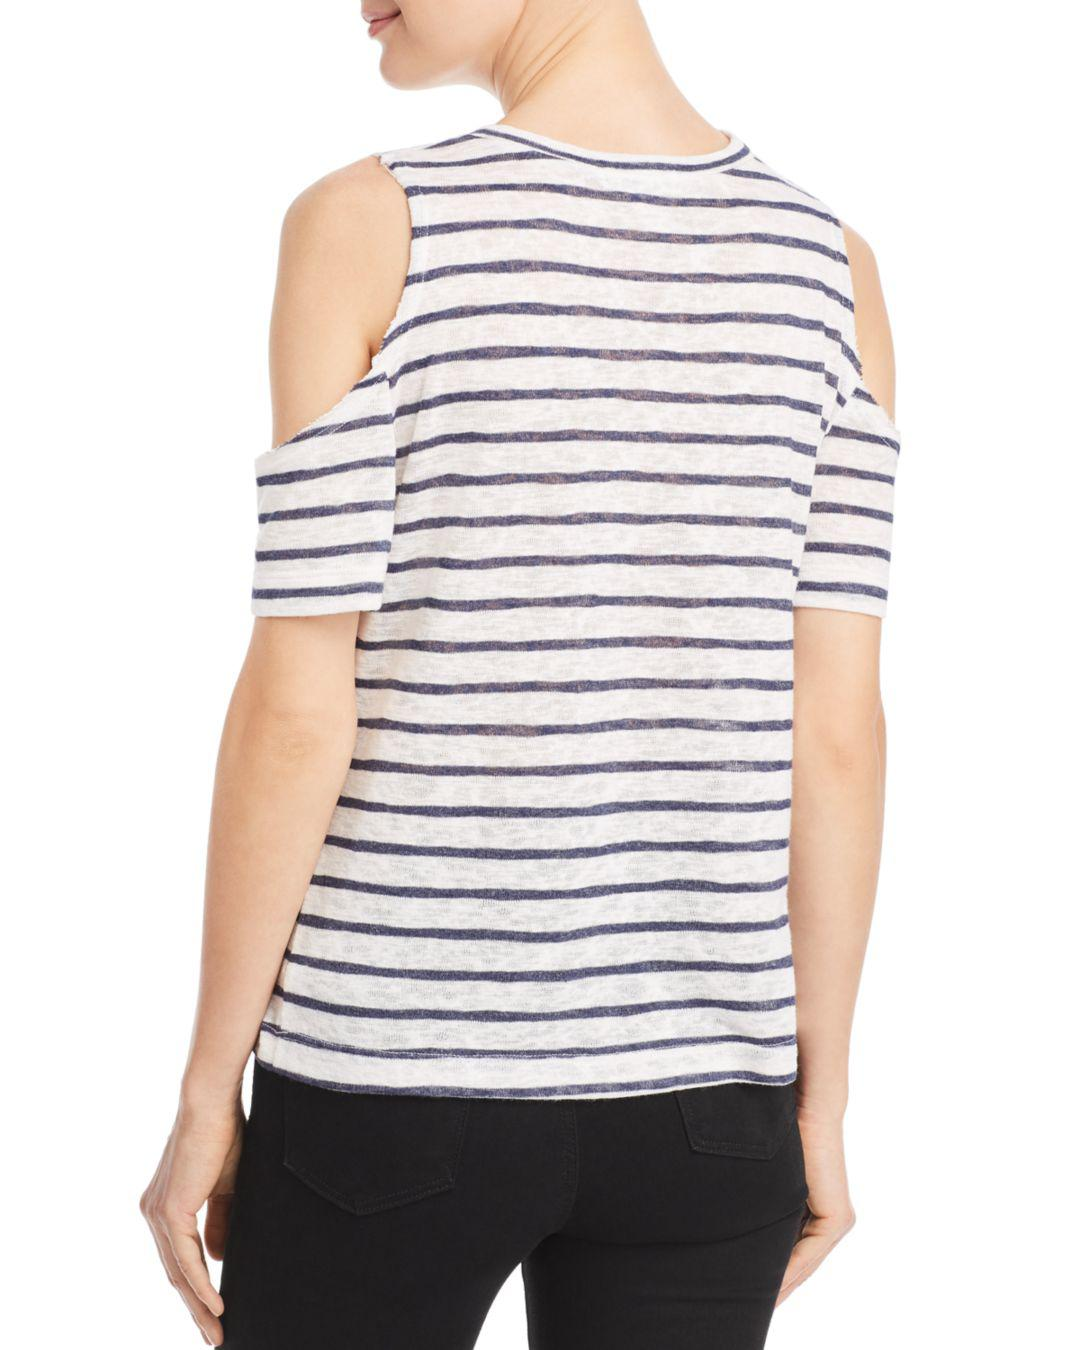 29a5a0665d LNA Avalanche Striped Tee in Blue - Lyst